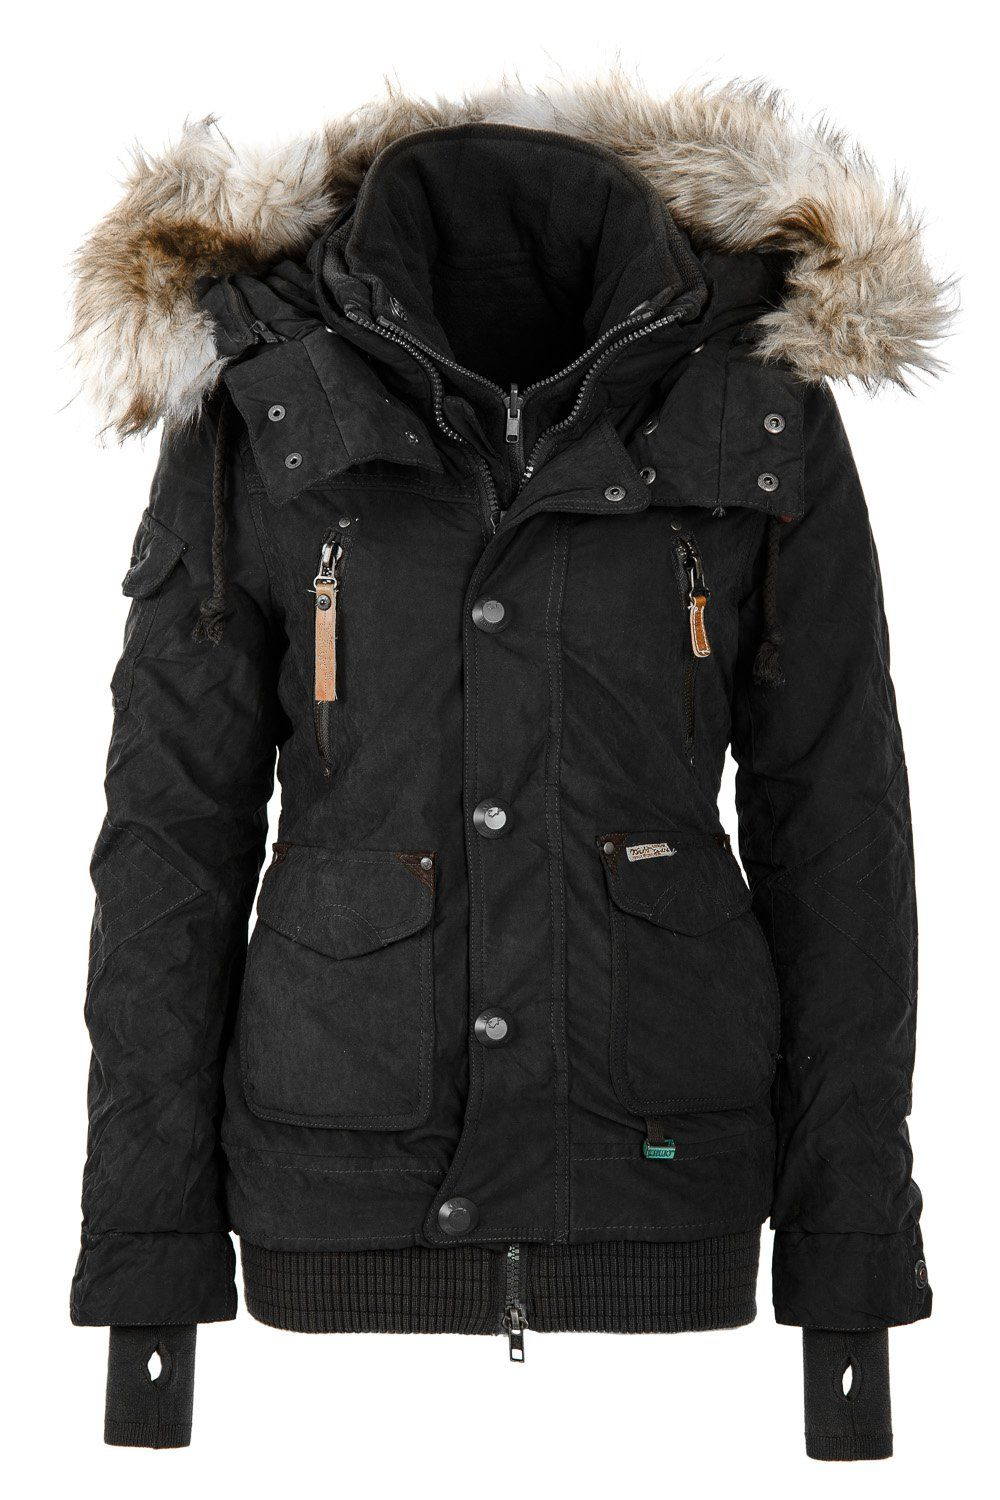 Womens winter jacket sale